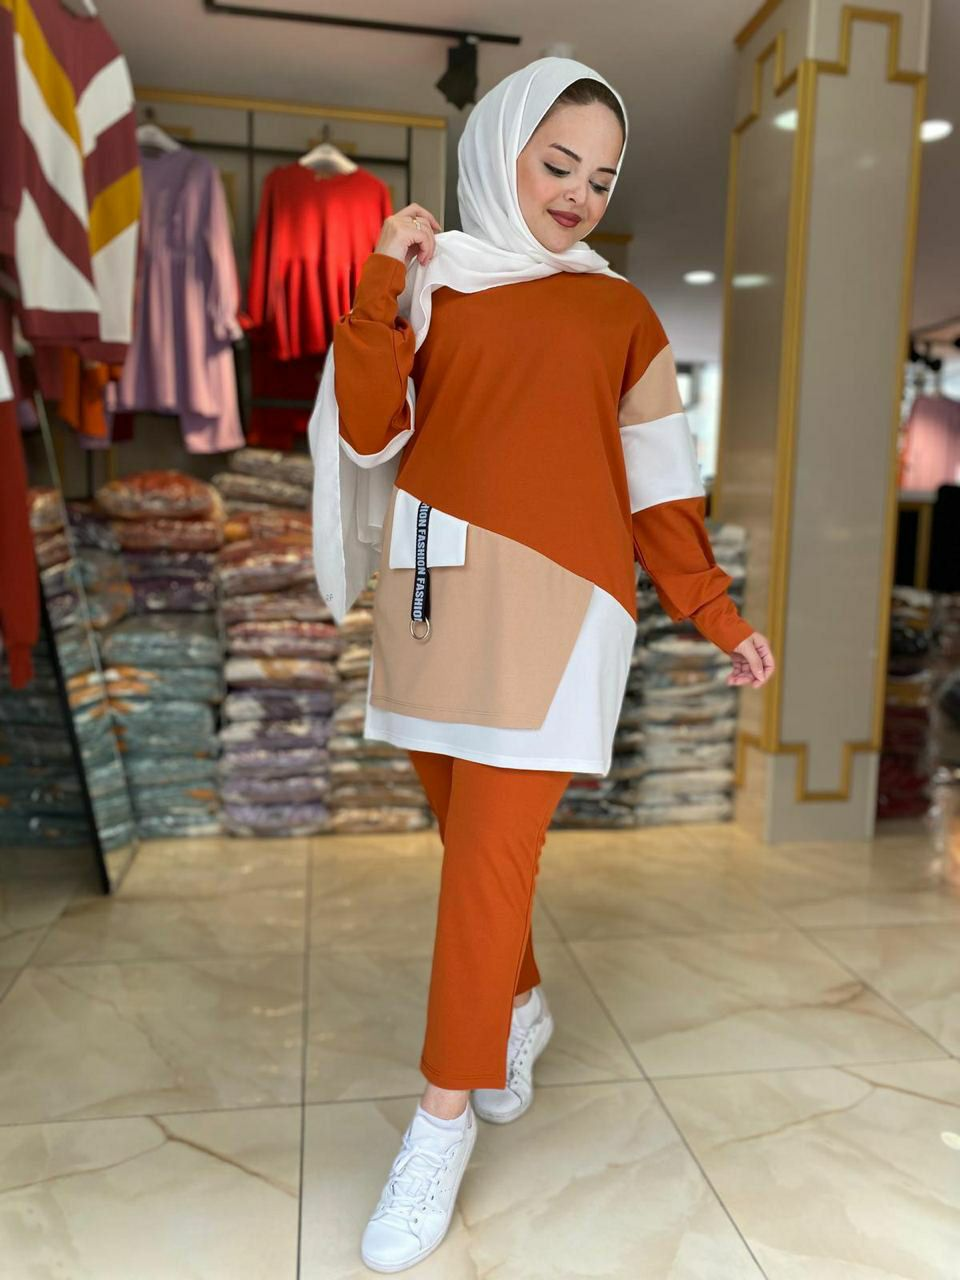 Survette femme longue made Turquie Manar, Orange, 36